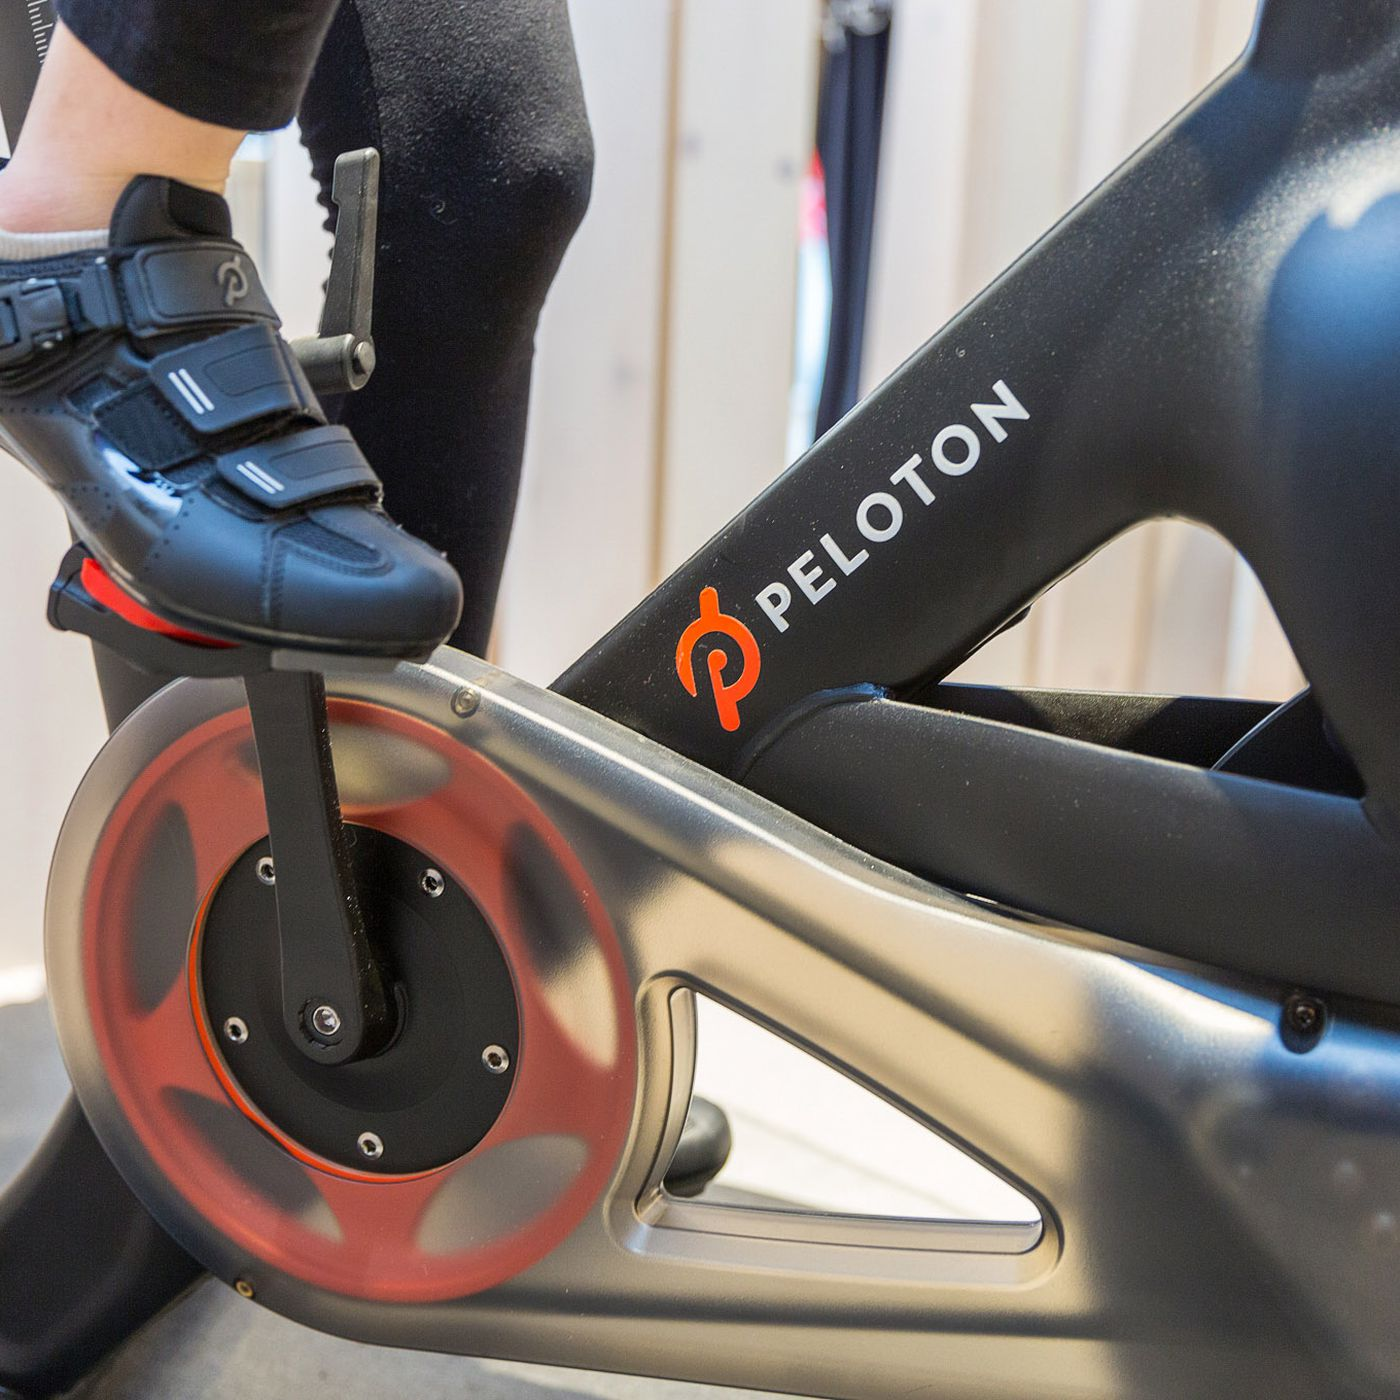 My two-month ride with Peloton, the cultish, internet-connected